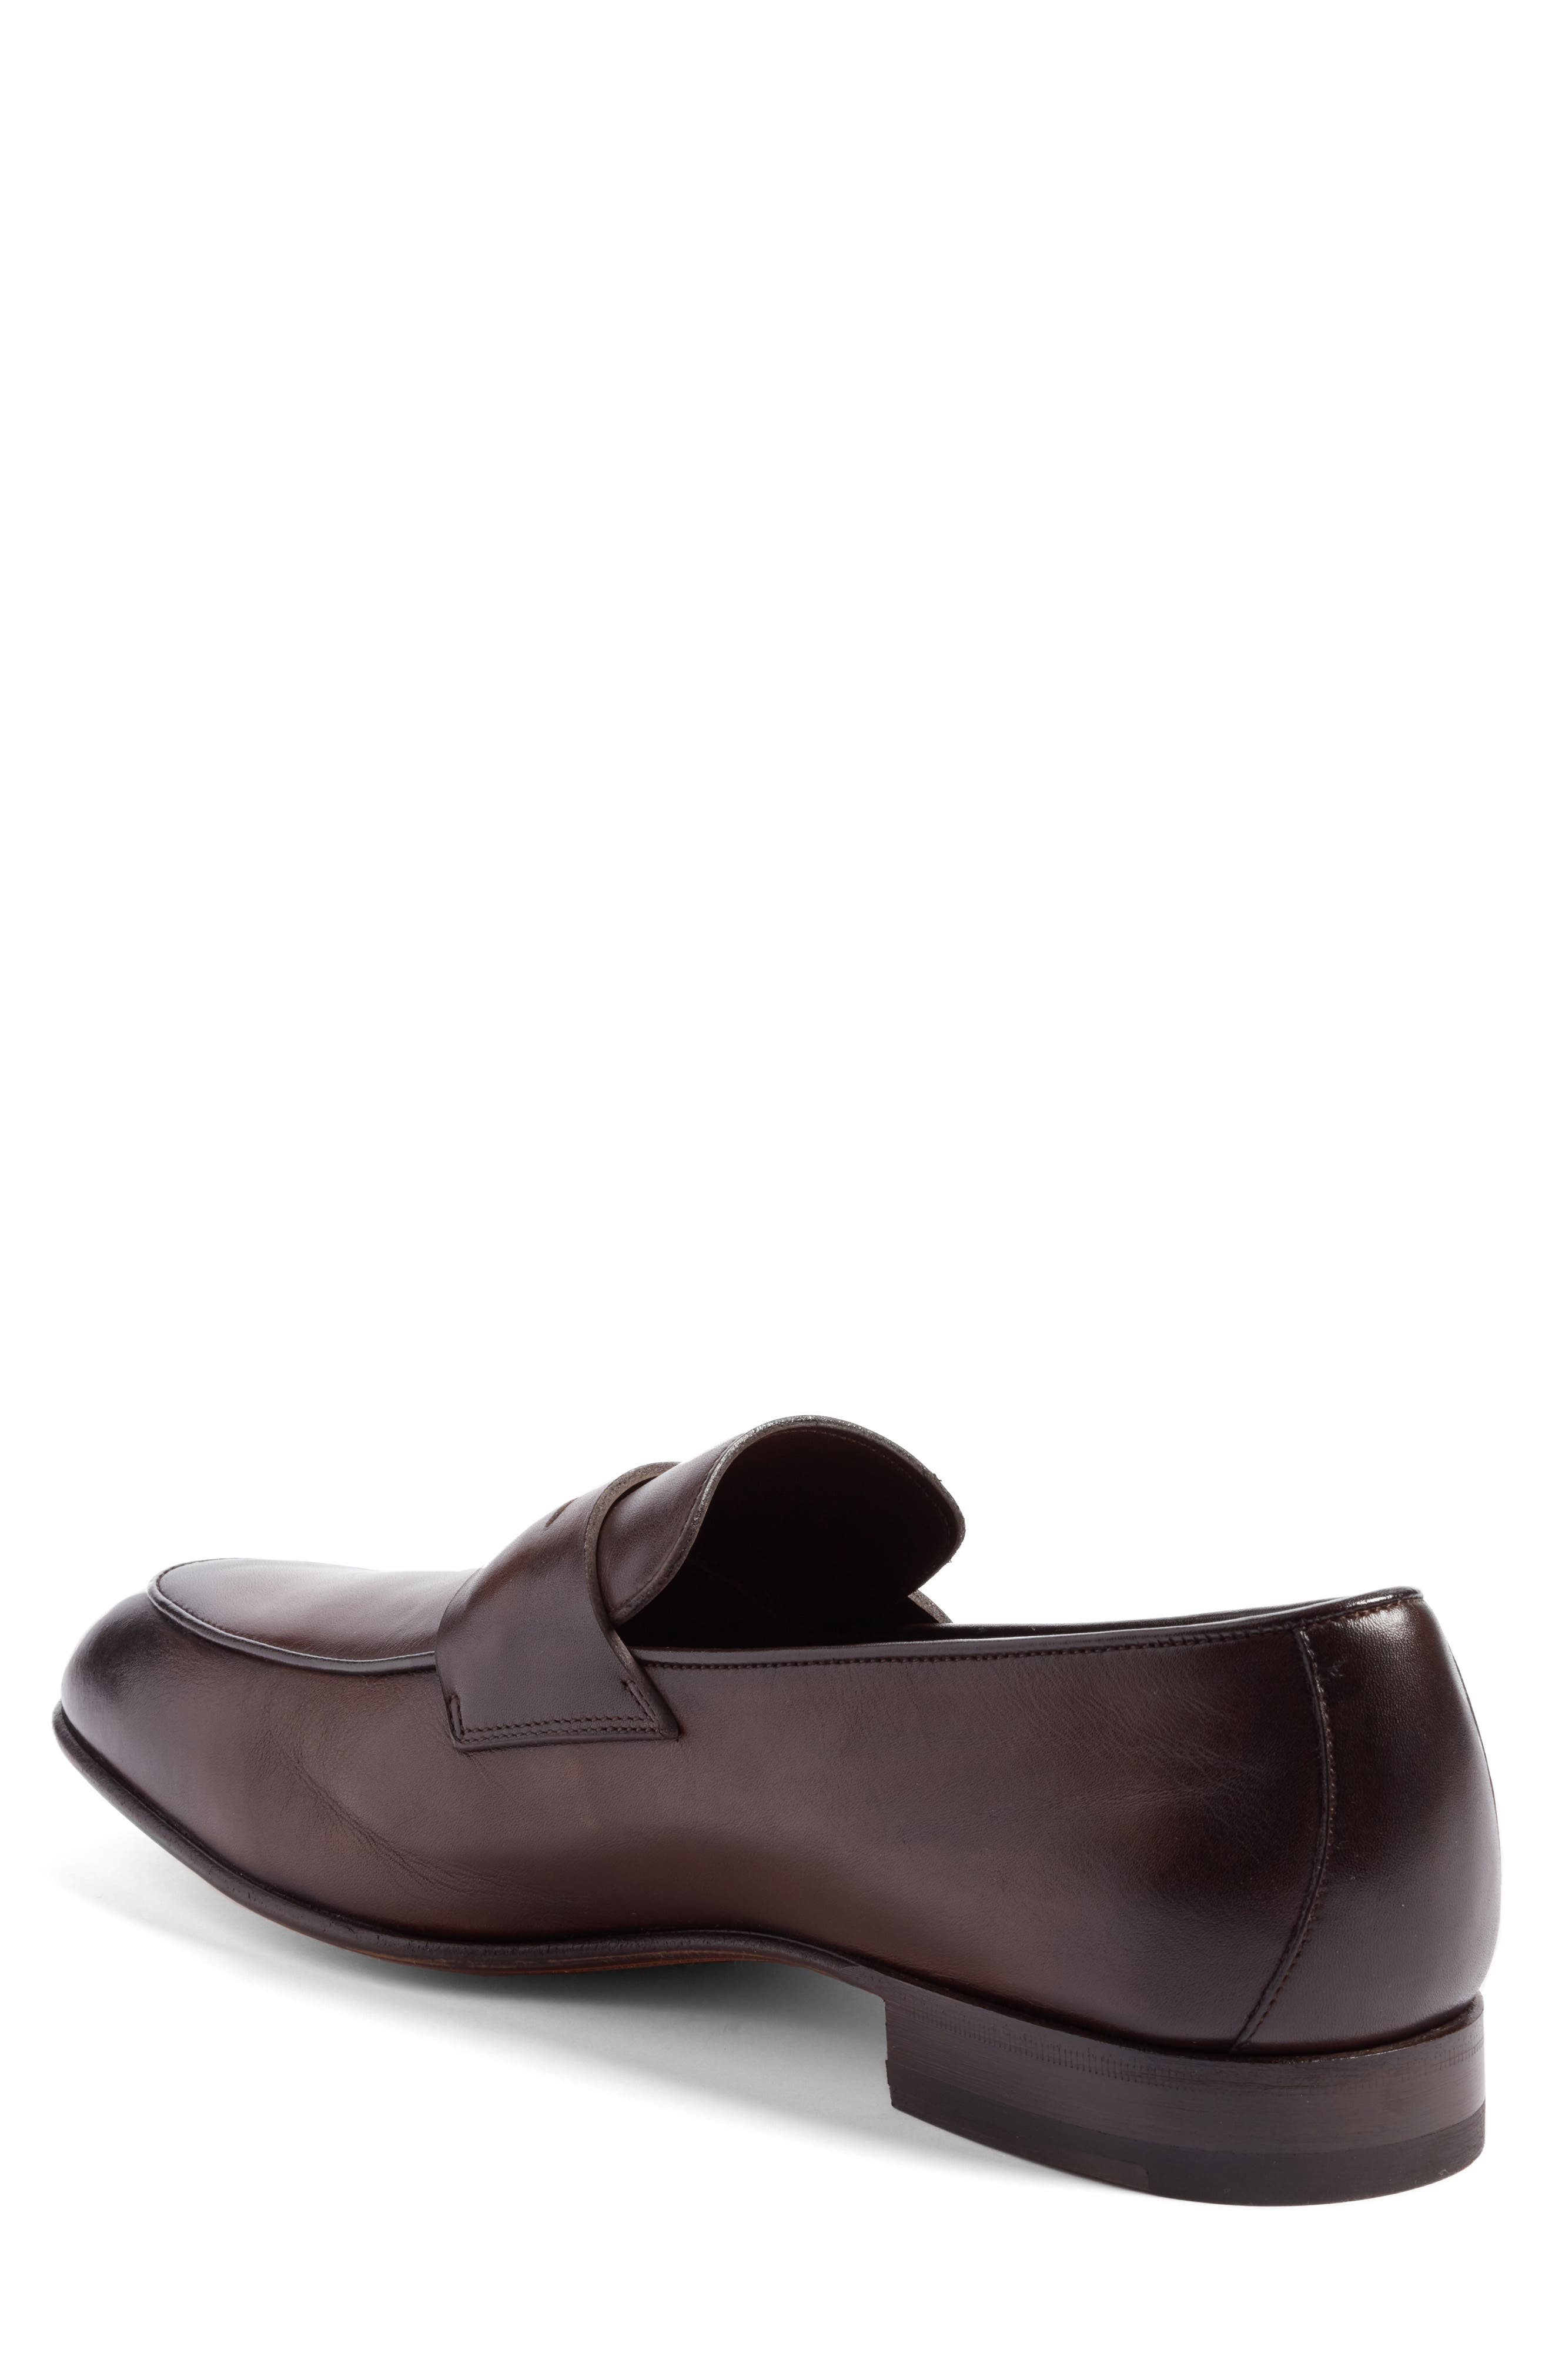 Fontaine Penny Loafer,                             Alternate thumbnail 2, color,                             209